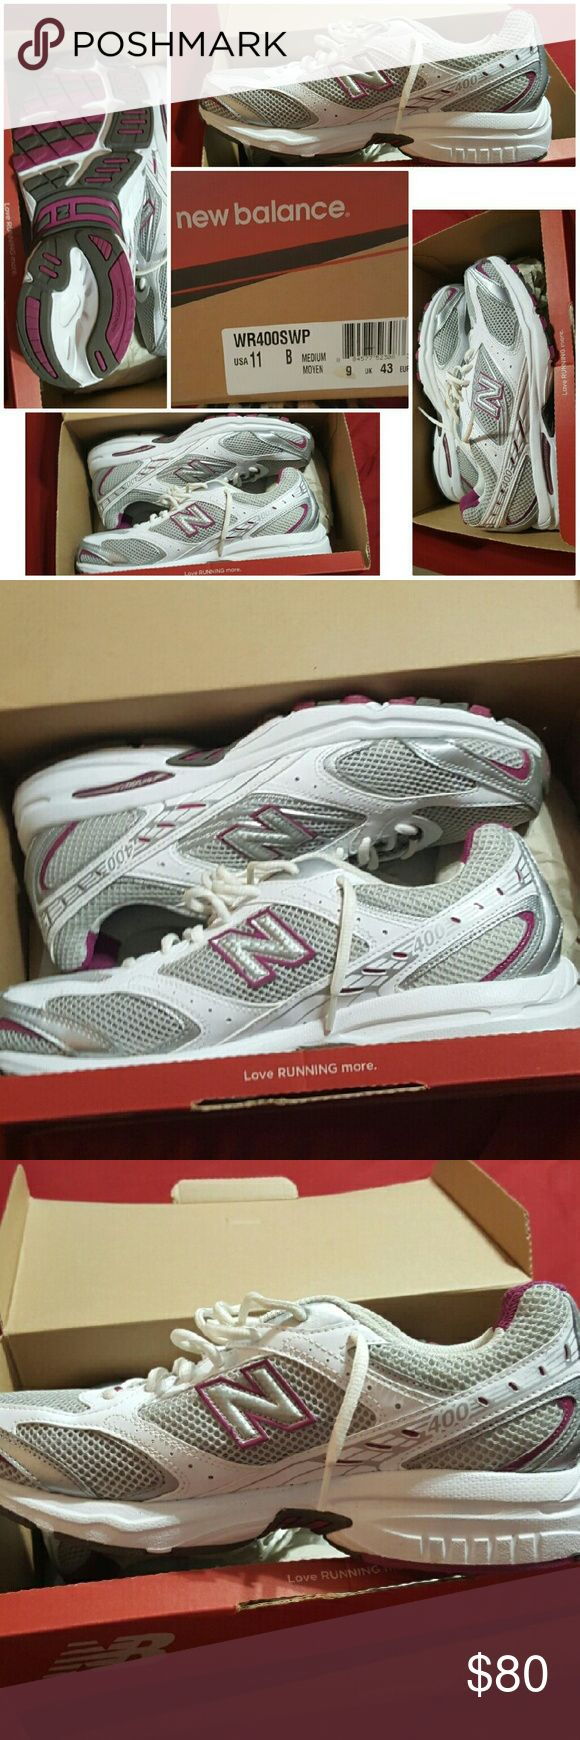 *PRICE DROP* New Balance Women's WR400 Running 11 New Balance Women's WR400 Running Shoe NEW in Box Women's Size 11   New Balance is known for quality, comfortable running shoes.  They have provided that and more with the New Balance WR400 running shoe. Built for neutral runners looking for more cushioning. Mesh and synthetic upper for breathability Cushioned footbed ABZORB? cushioning in the heel is form fitting and provides extra comfort  Rubber outsole provides long-lasting shock…